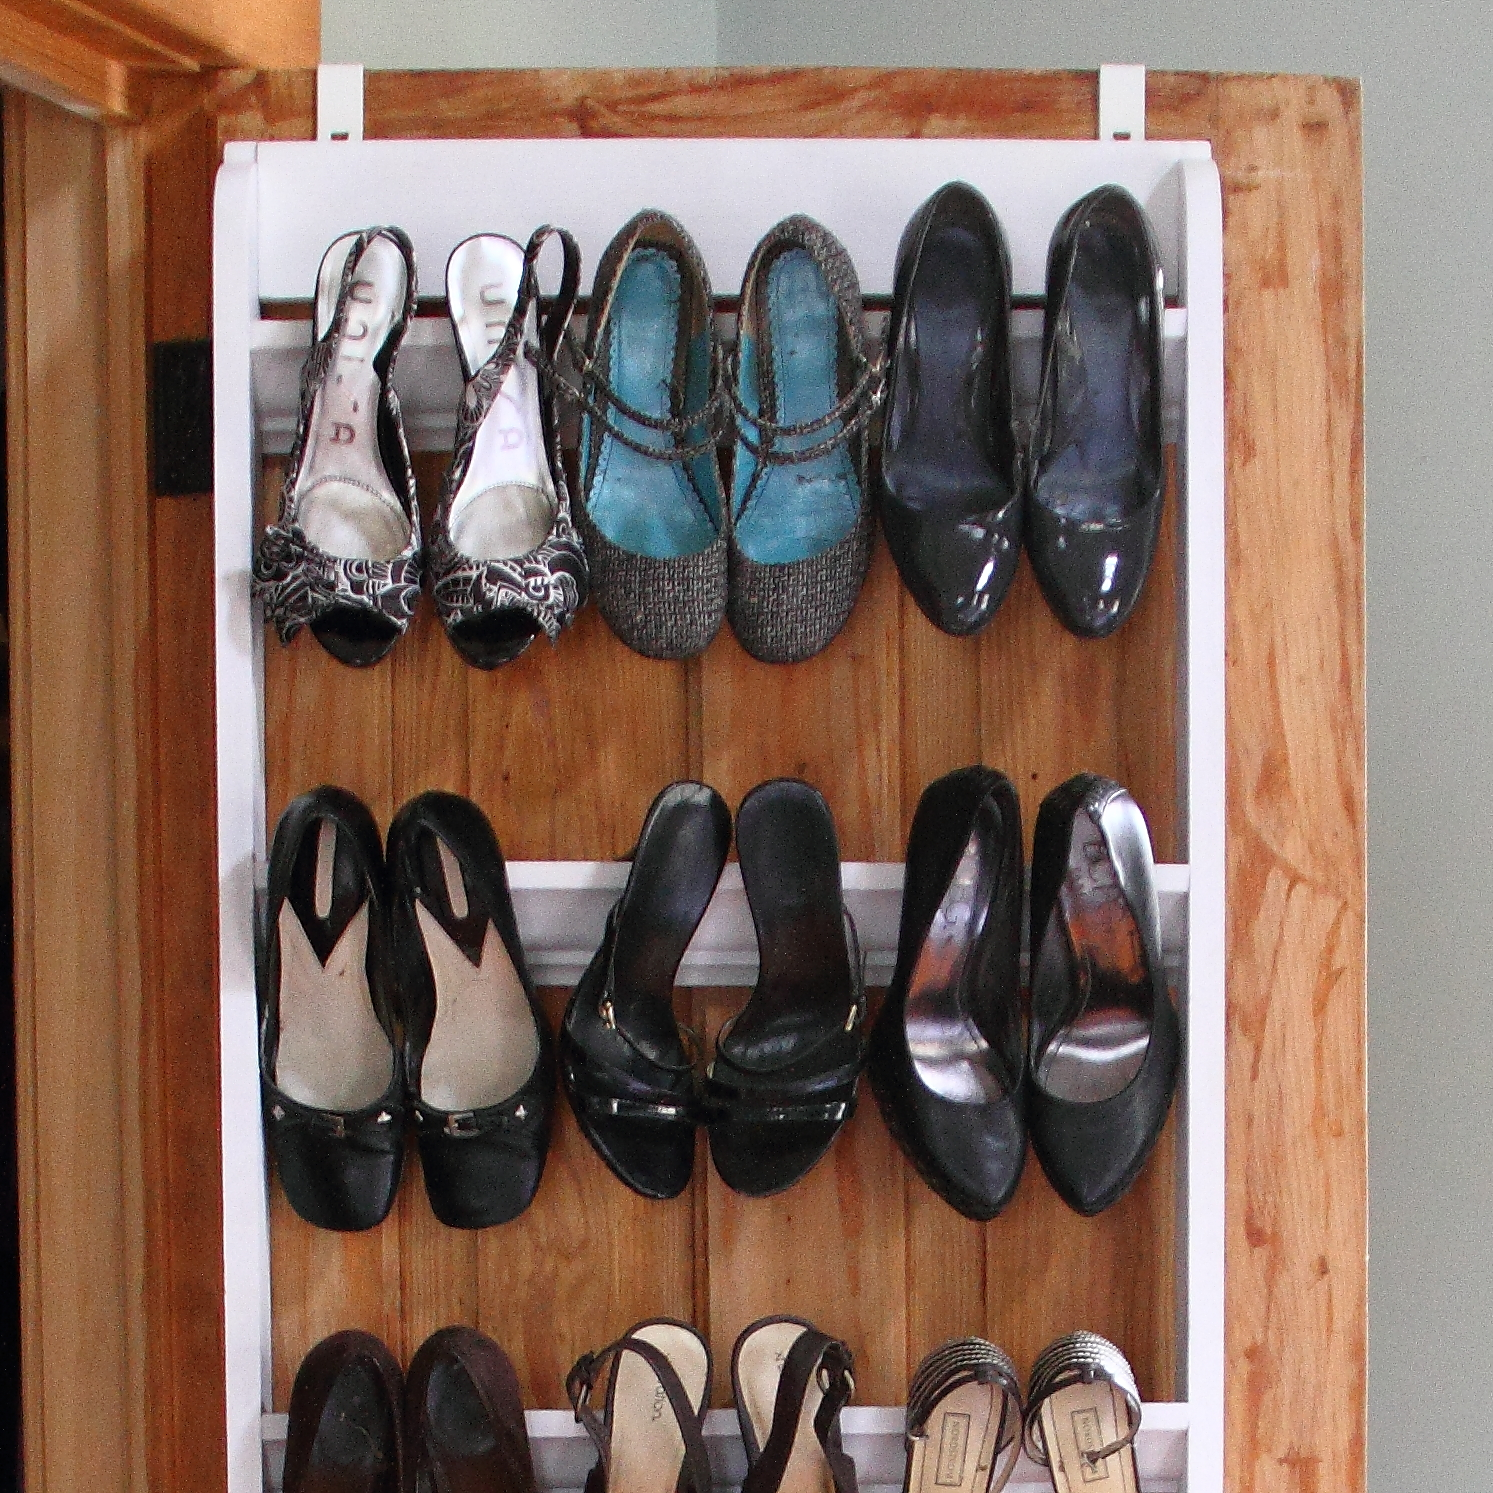 Ana white diy crown molding shoe organizer for heels diy projects solutioingenieria Choice Image